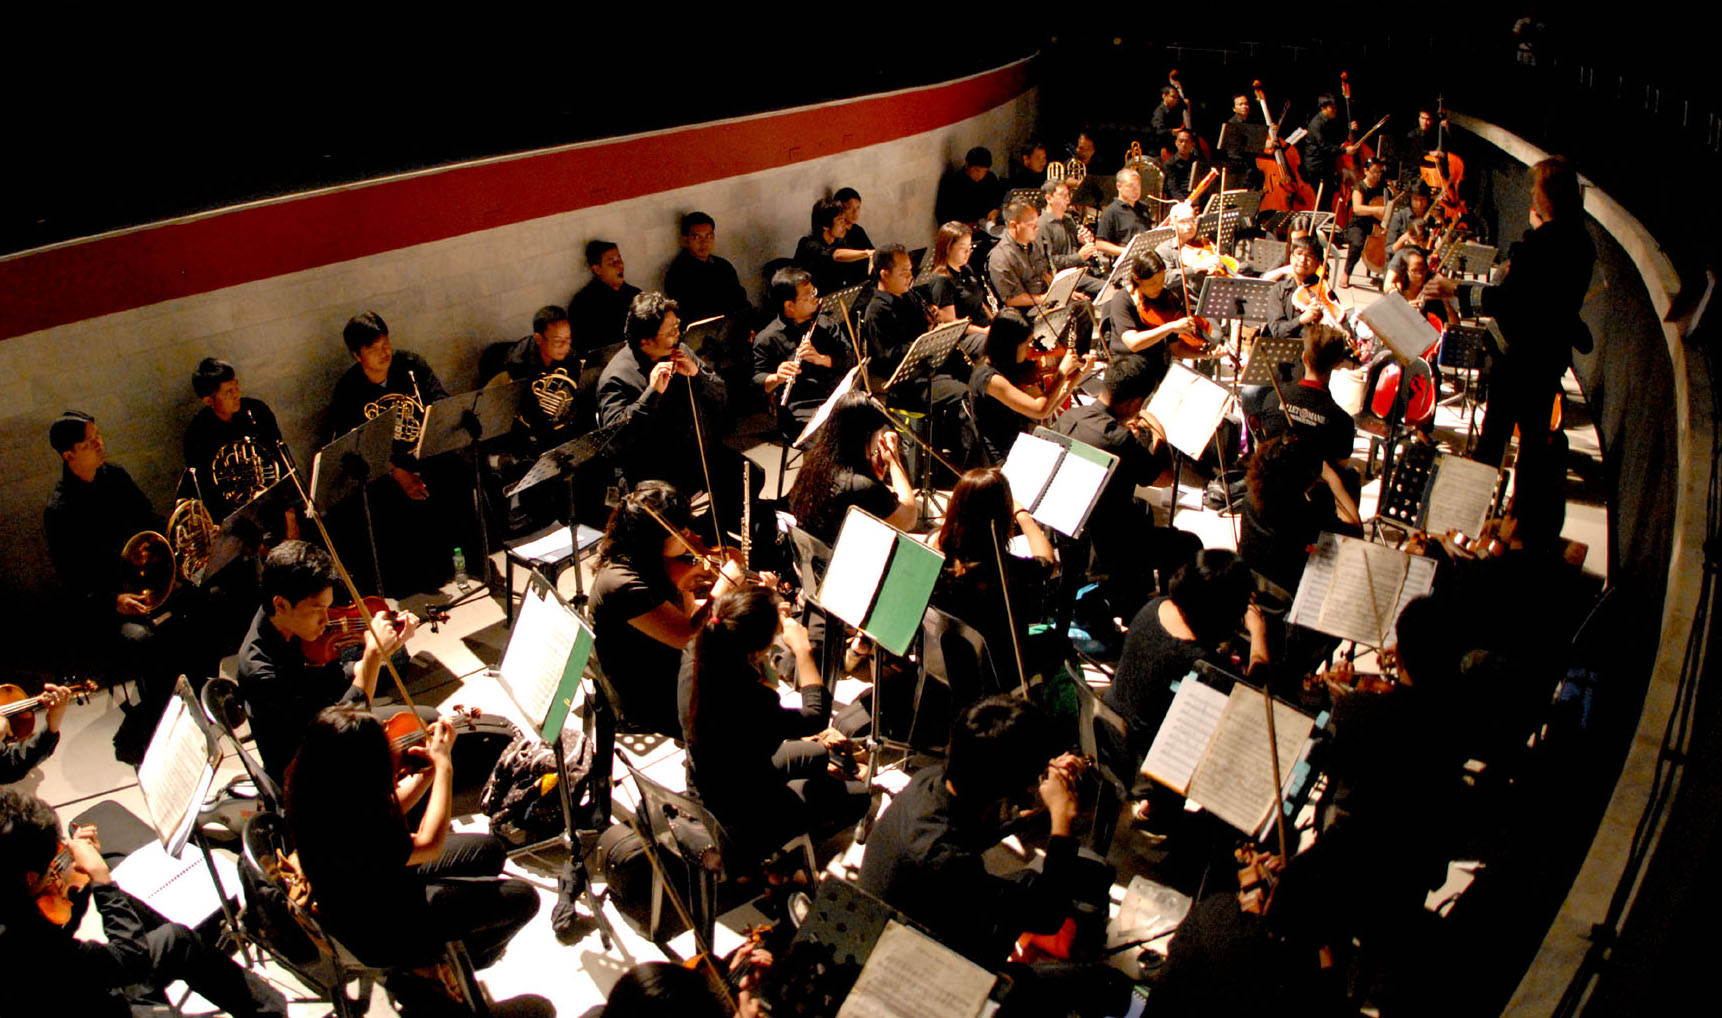 Most orchestras actually play mainly beneath the stage. Here is a pit orchestra arrayed in front of the proscenium.